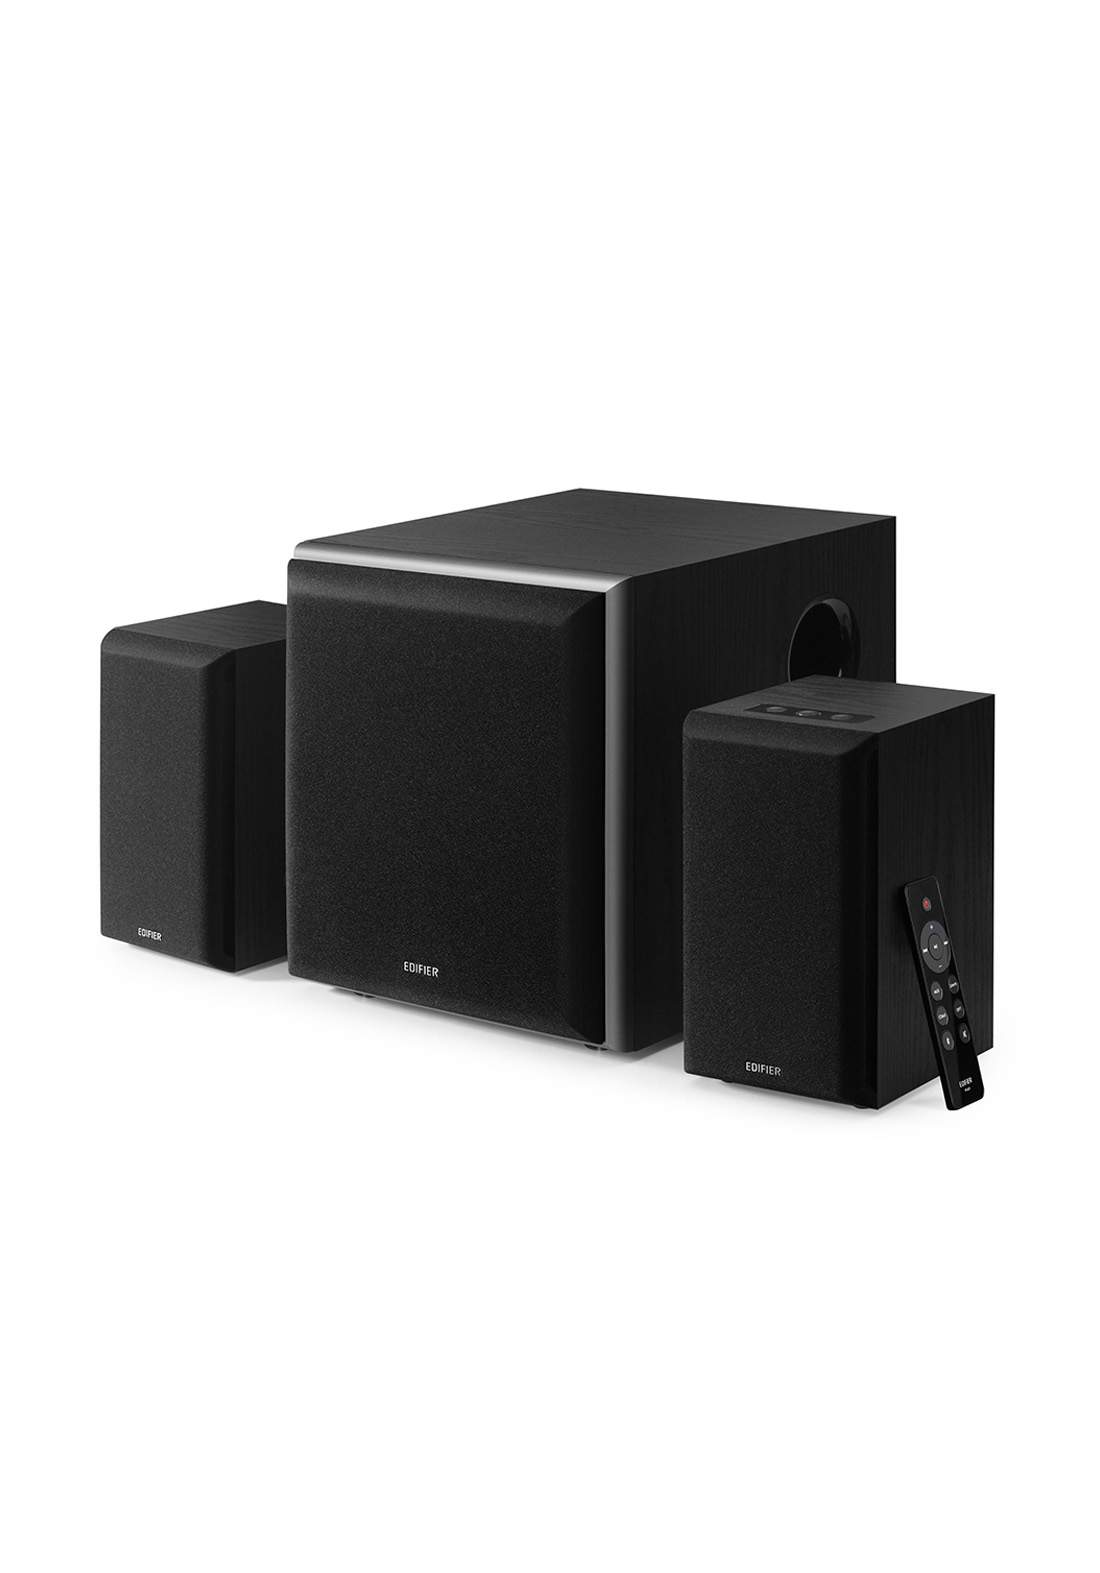 Edifier M601DB Computer Speaker System with Wireless Subwoofer - Black  مضخم صوت